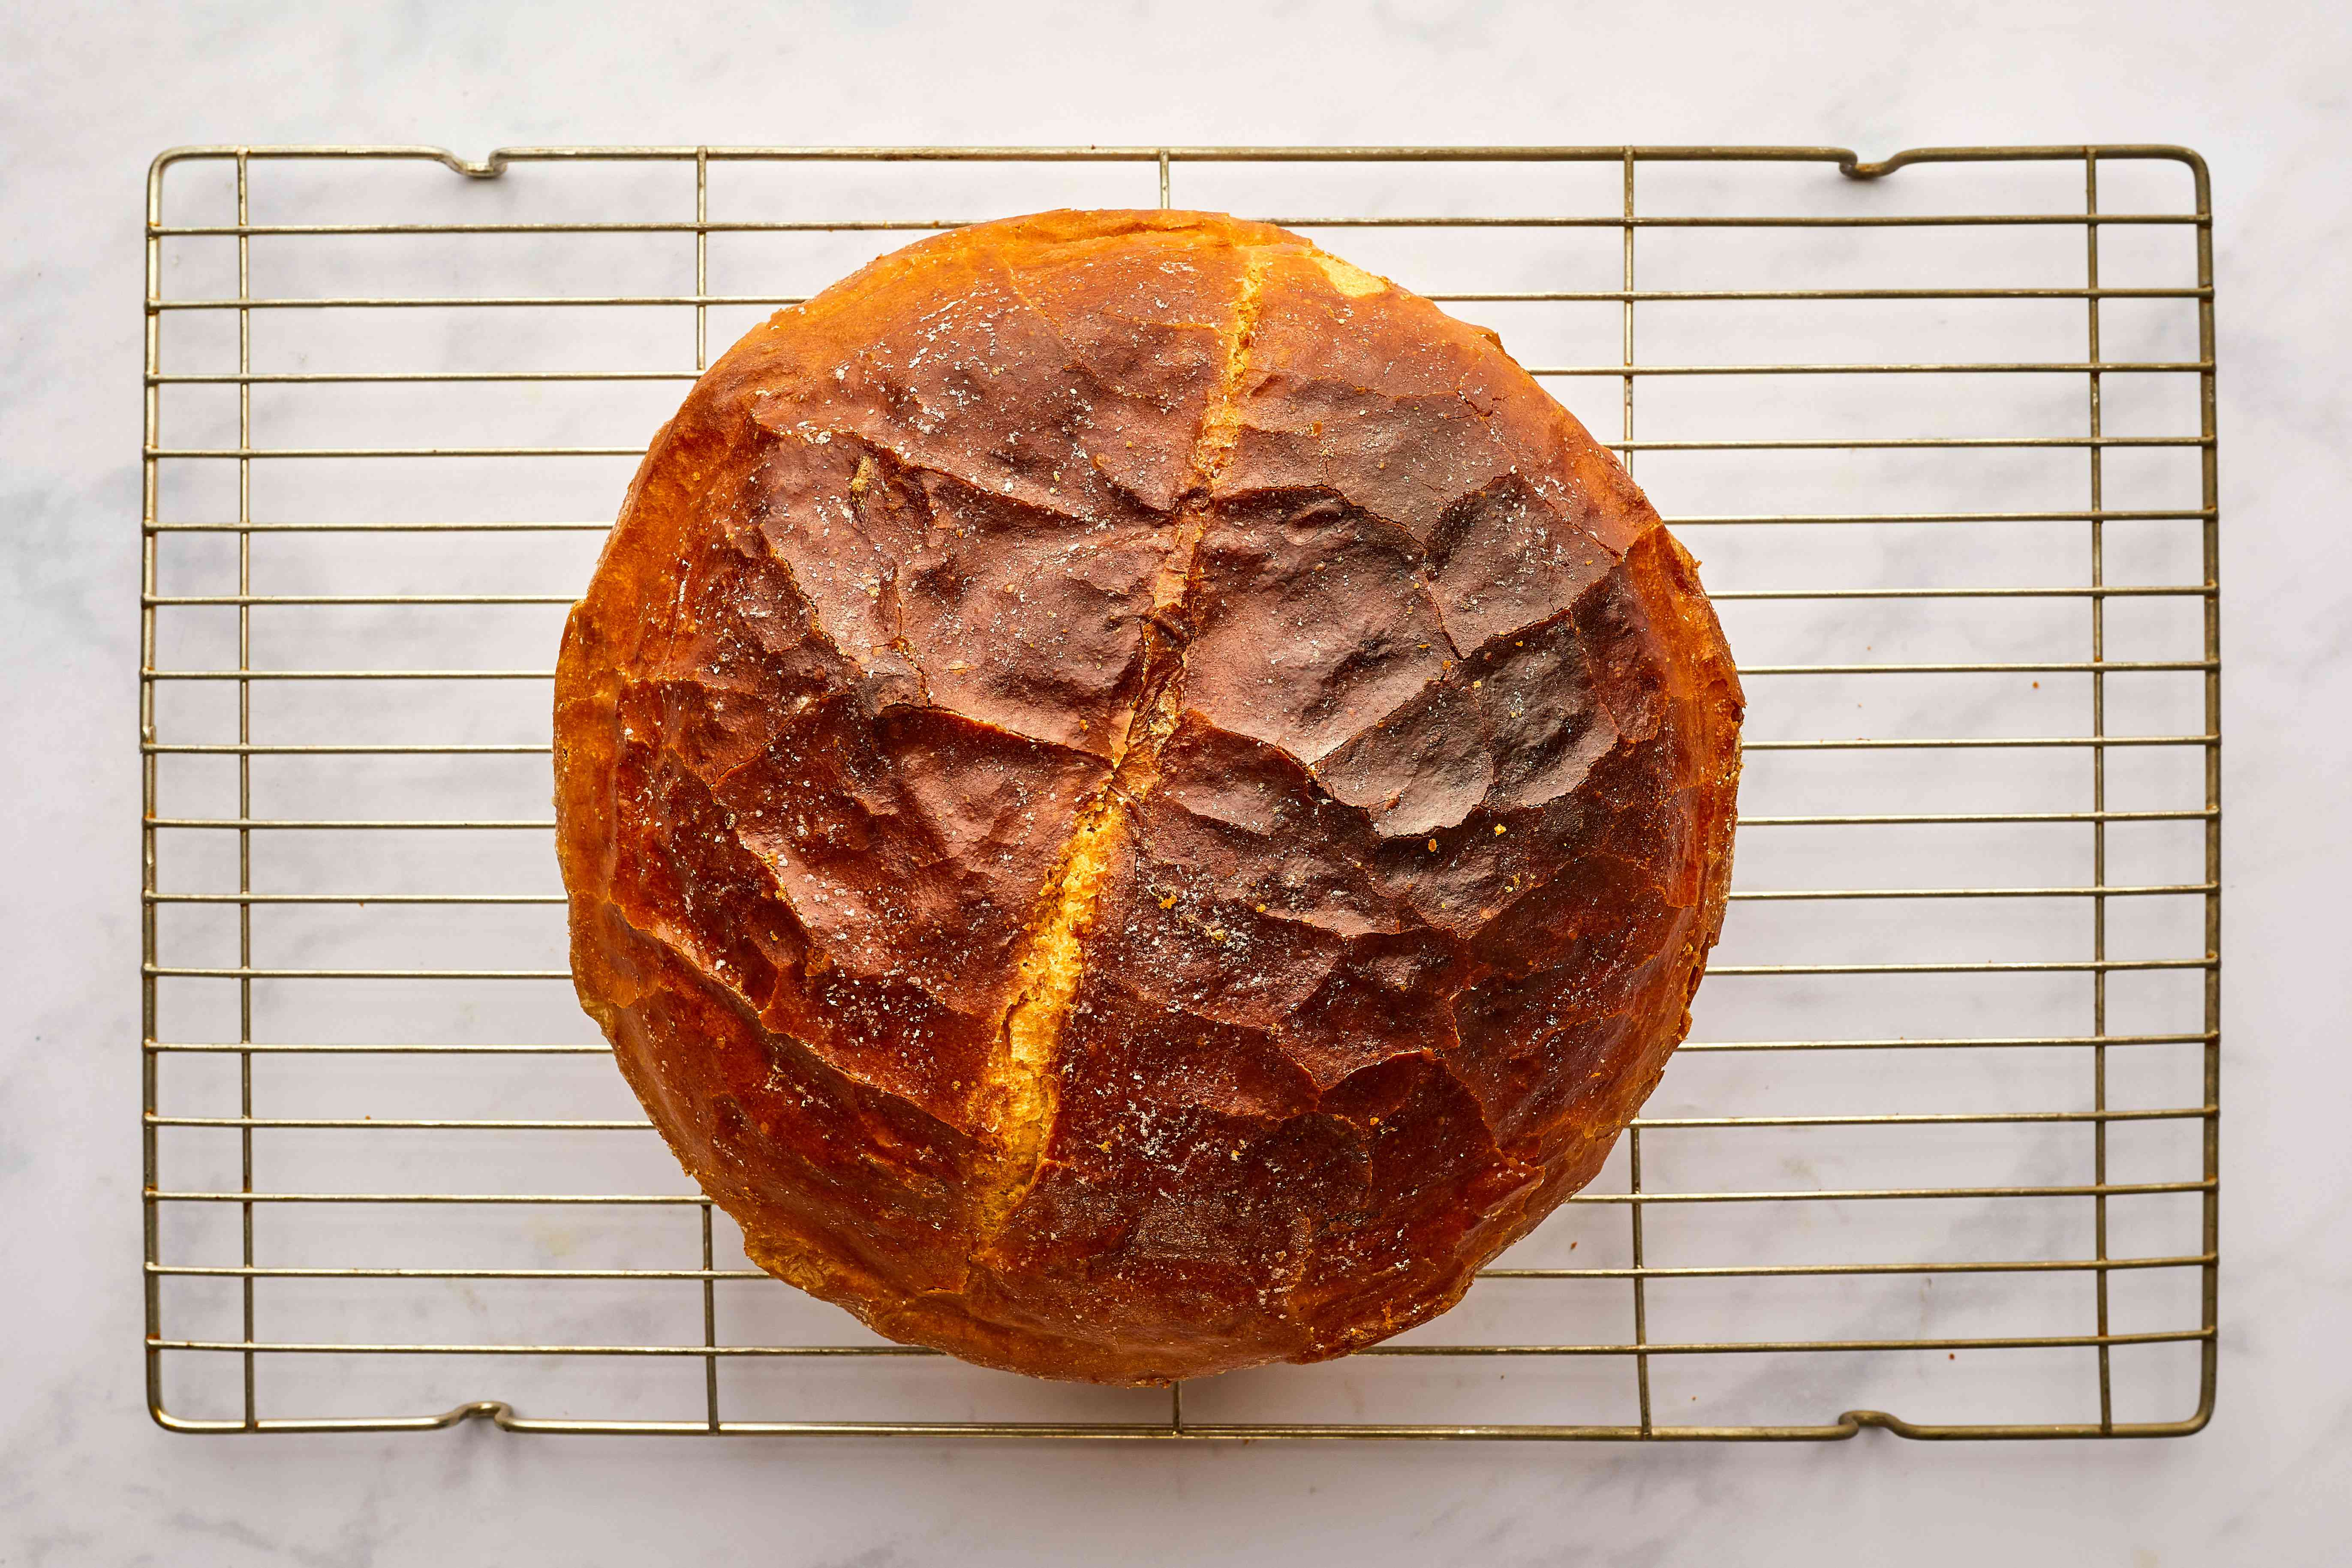 Round White Bread on a cooling rack